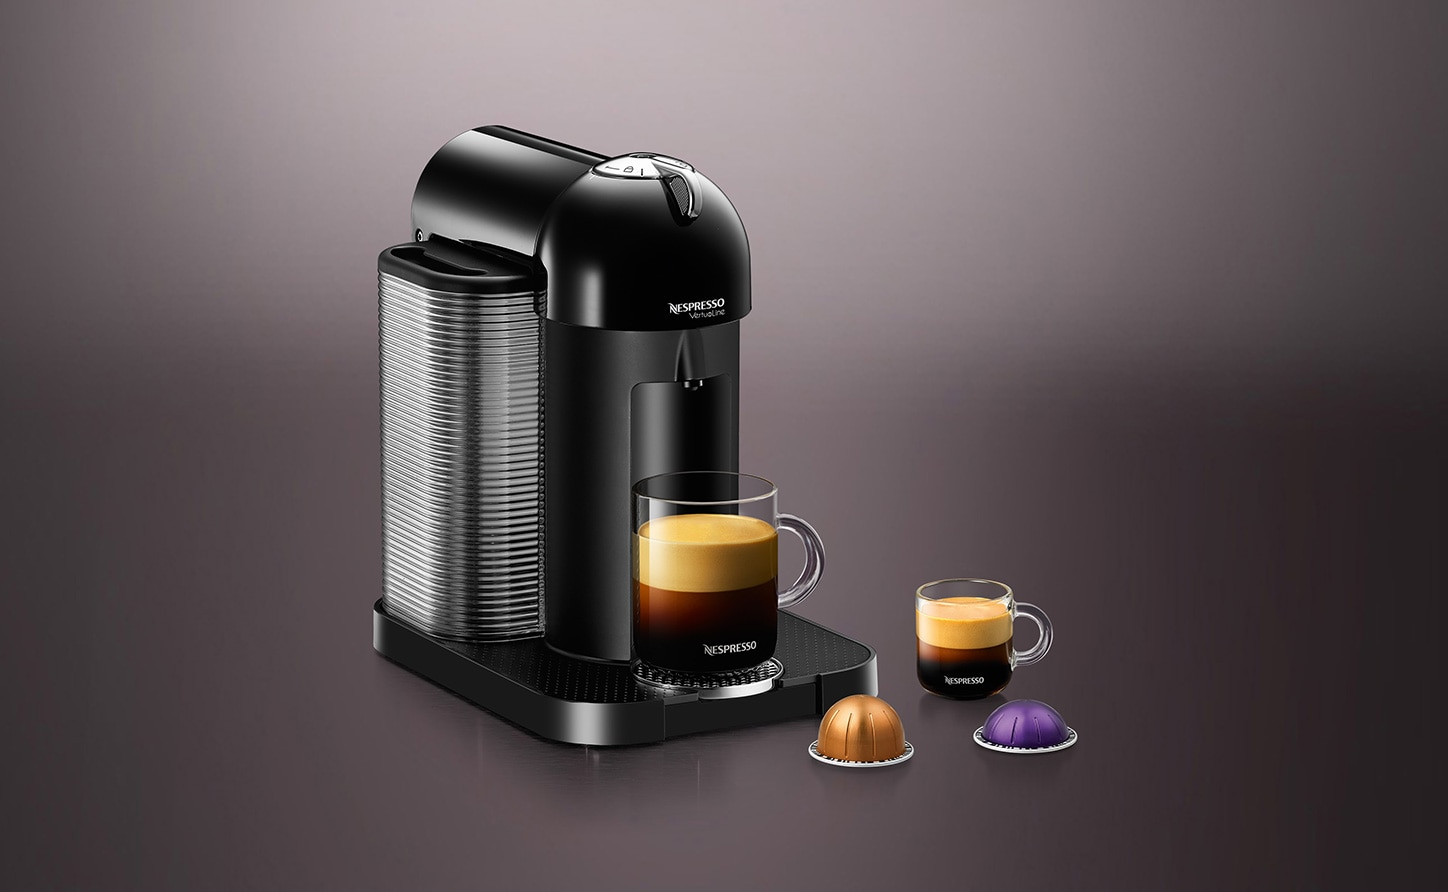 Tiny foot print, compact, lightweight and equipped with an ergonomic handle, the new Inissia machine fits perfectly into any interior design. Nespresso began more than 25 years ago with a simple but revolutionary idea, to create the perfect cup of Espresso coffee with exquisite crema, tantalizing aroma and full bodied taste - just like skilled baristas.